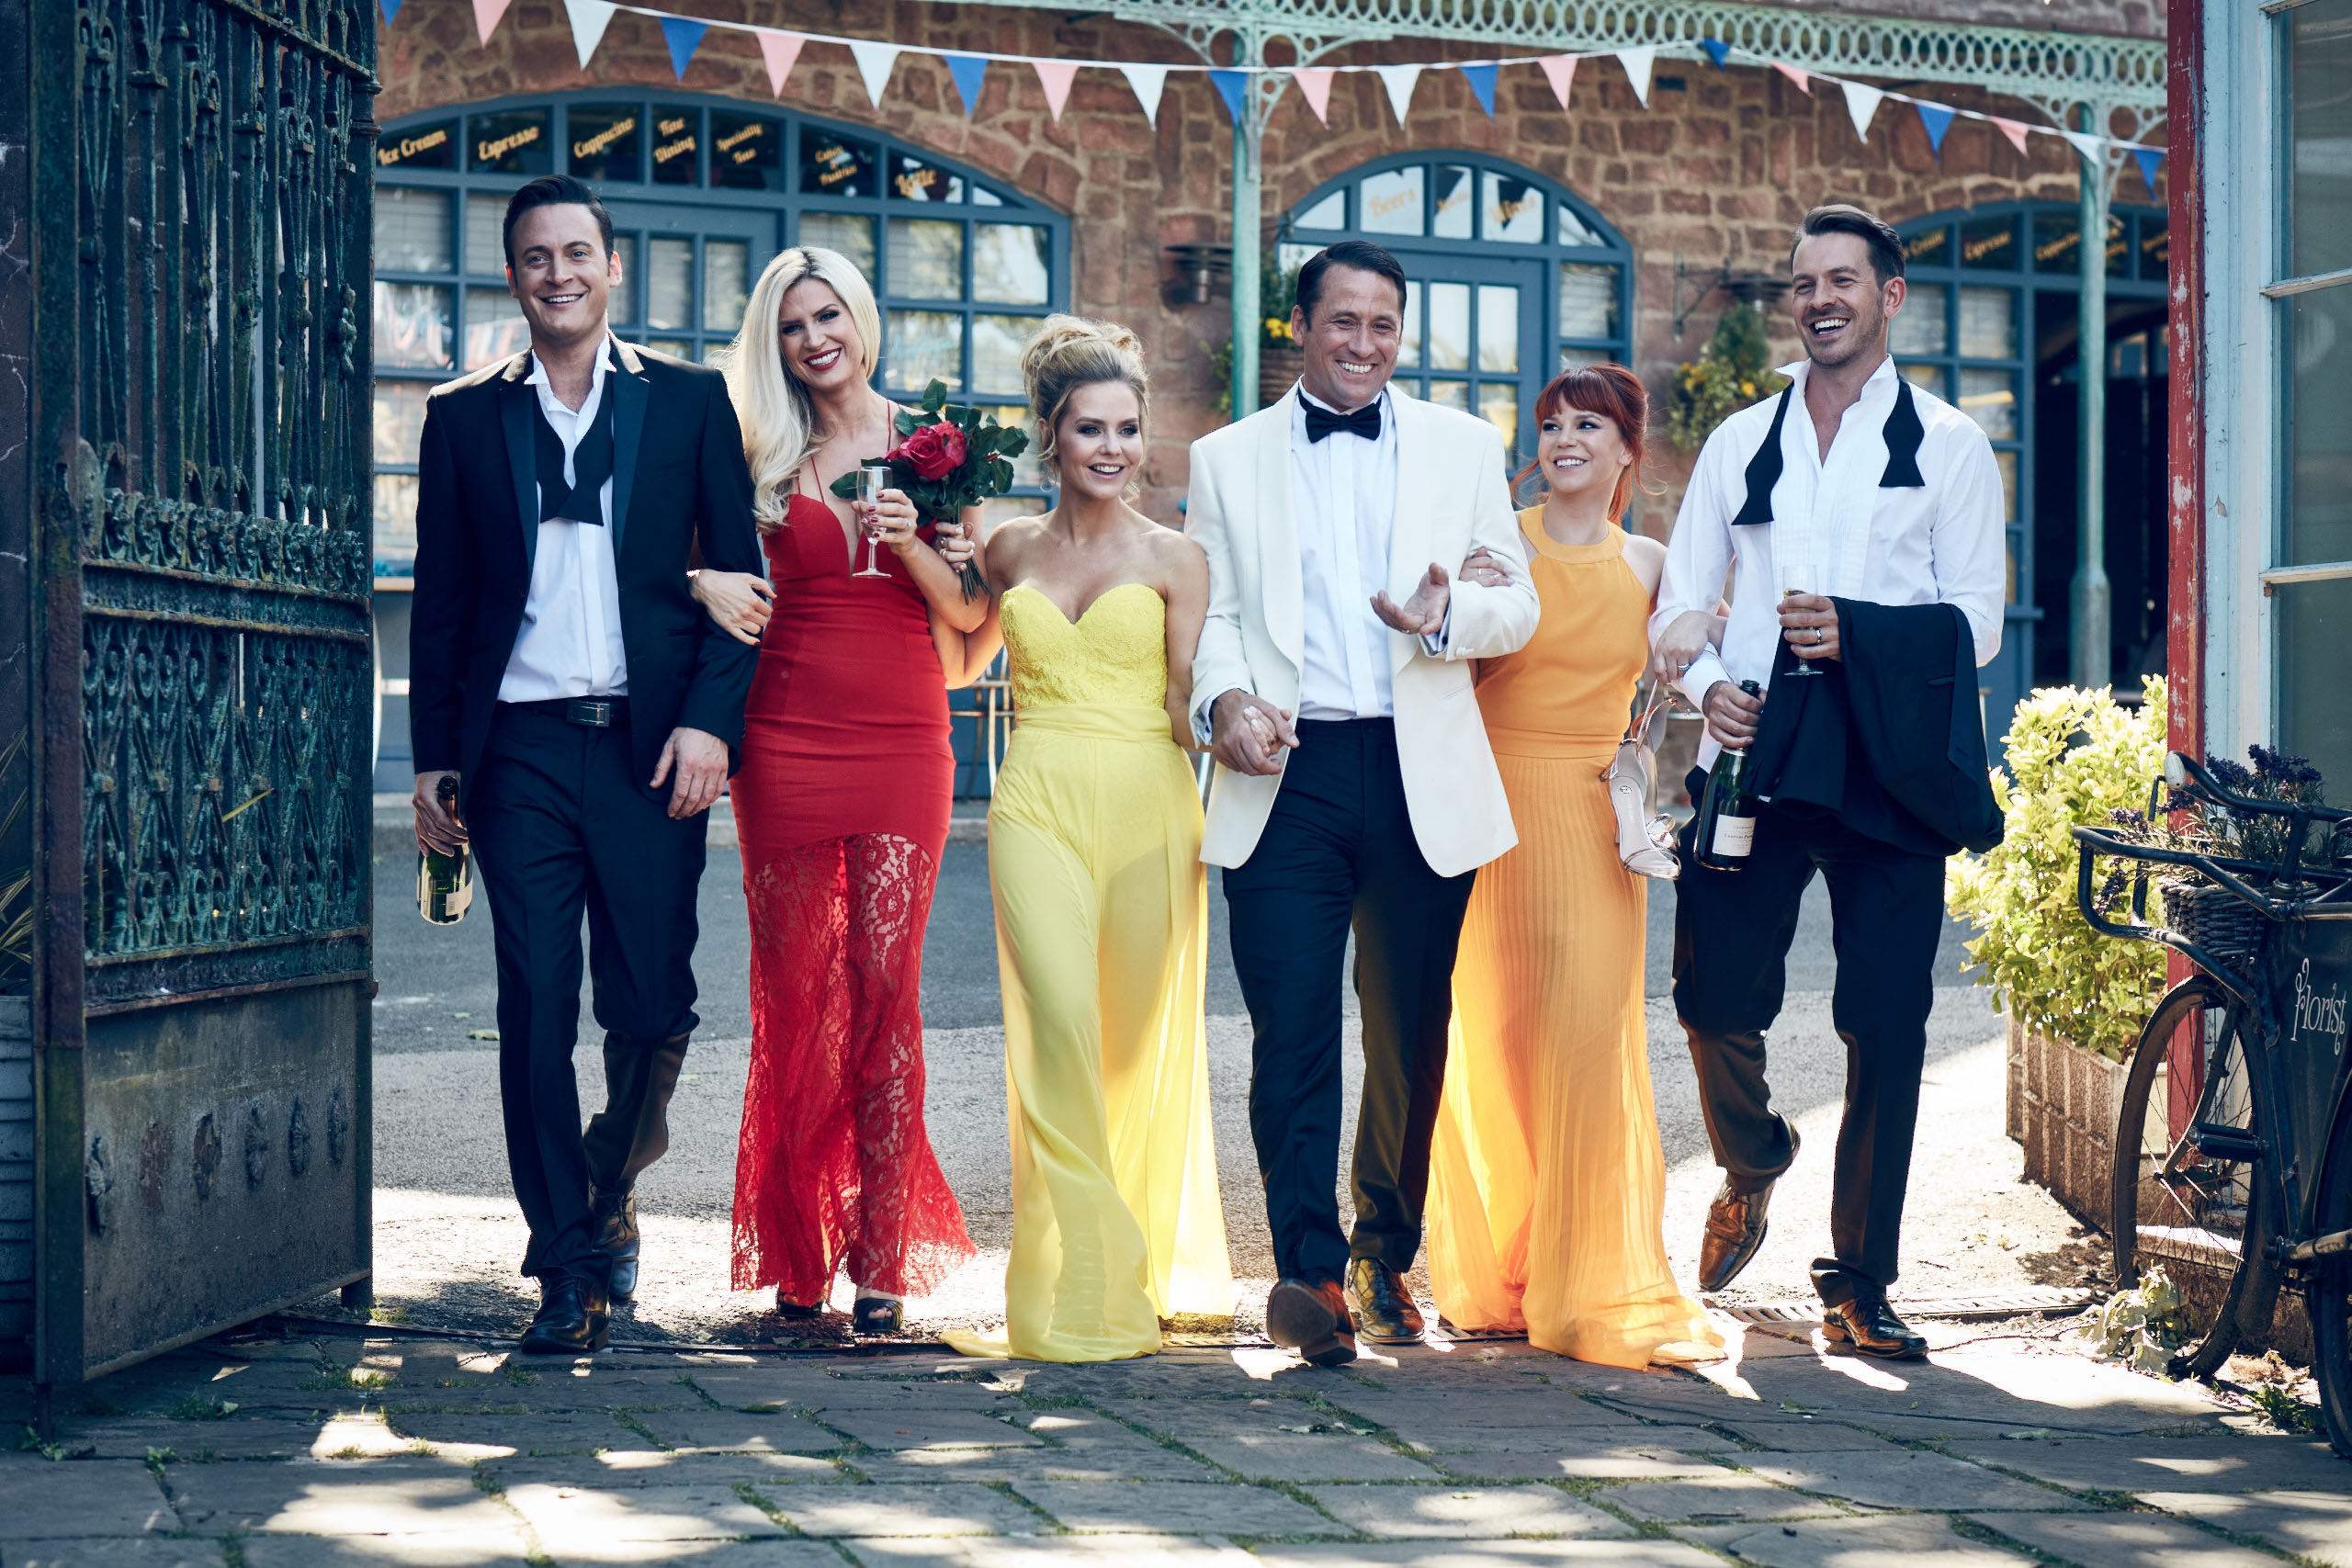 Hollyoaks is releasing a box set of classic episodes